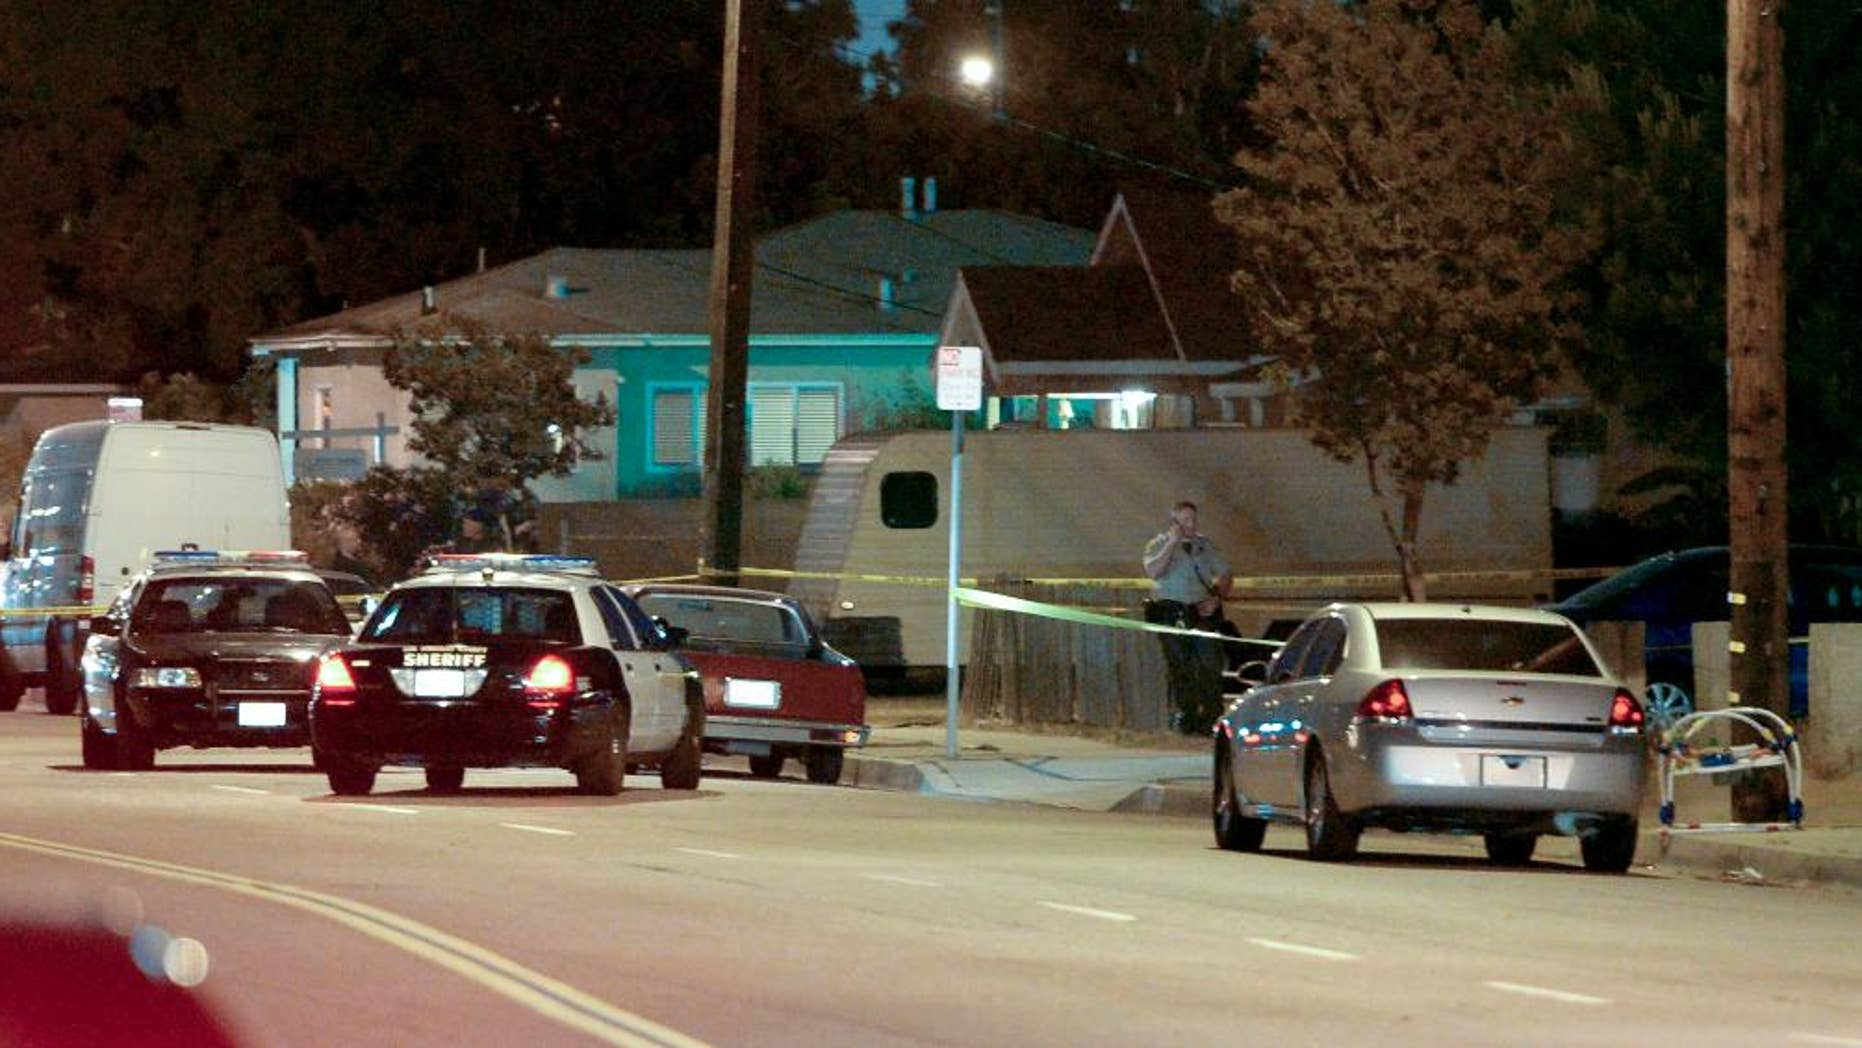 Los Angeles County sheriff's deputies block off the scene of a triple homicide that occurred in the unincorporated area of Los Angeles, Calif., Tuesday, May 20, 2014.  Carol Coronado, 30, was arrested on suspicion of murder, taken to a hospital for examination and then to a sheriff's station for booking. Authorities say she made no statement. (AP Photo/The Daily Breeze, Steve McCrank)